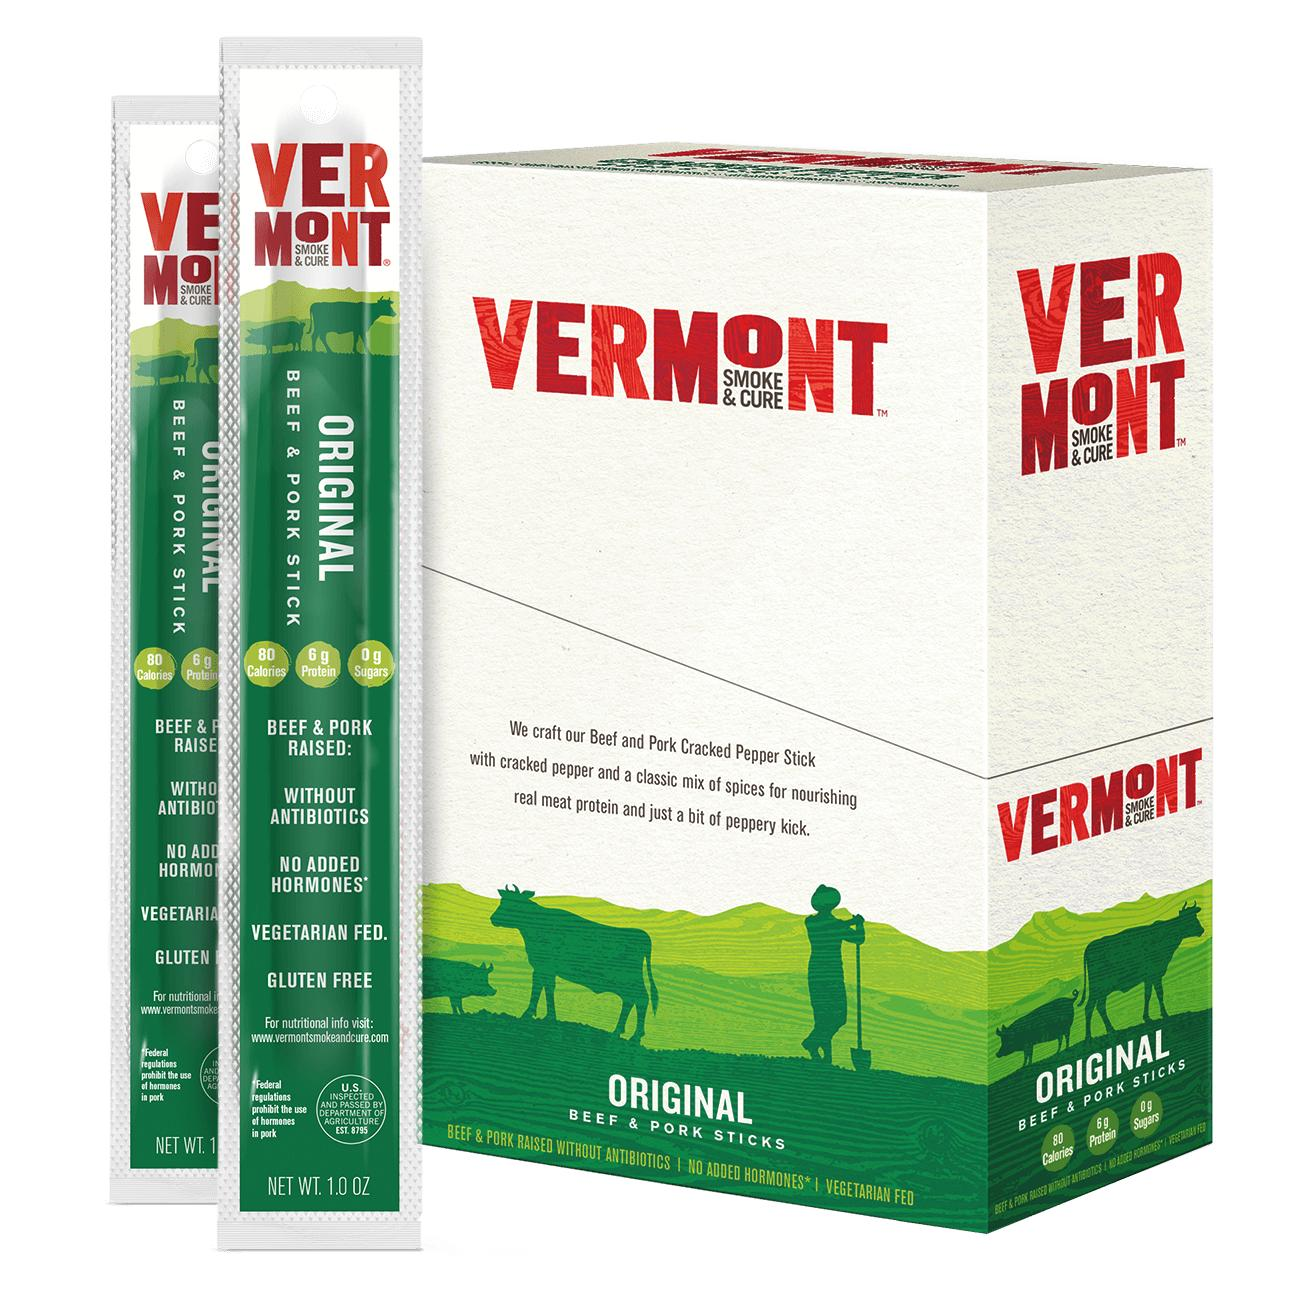 Vermont Smoke & Cure Meat Sticks, Beef & Pork, Antibiotic Free, Gluten Free, Cracked Pepper, 1oz Stick, 24 Count